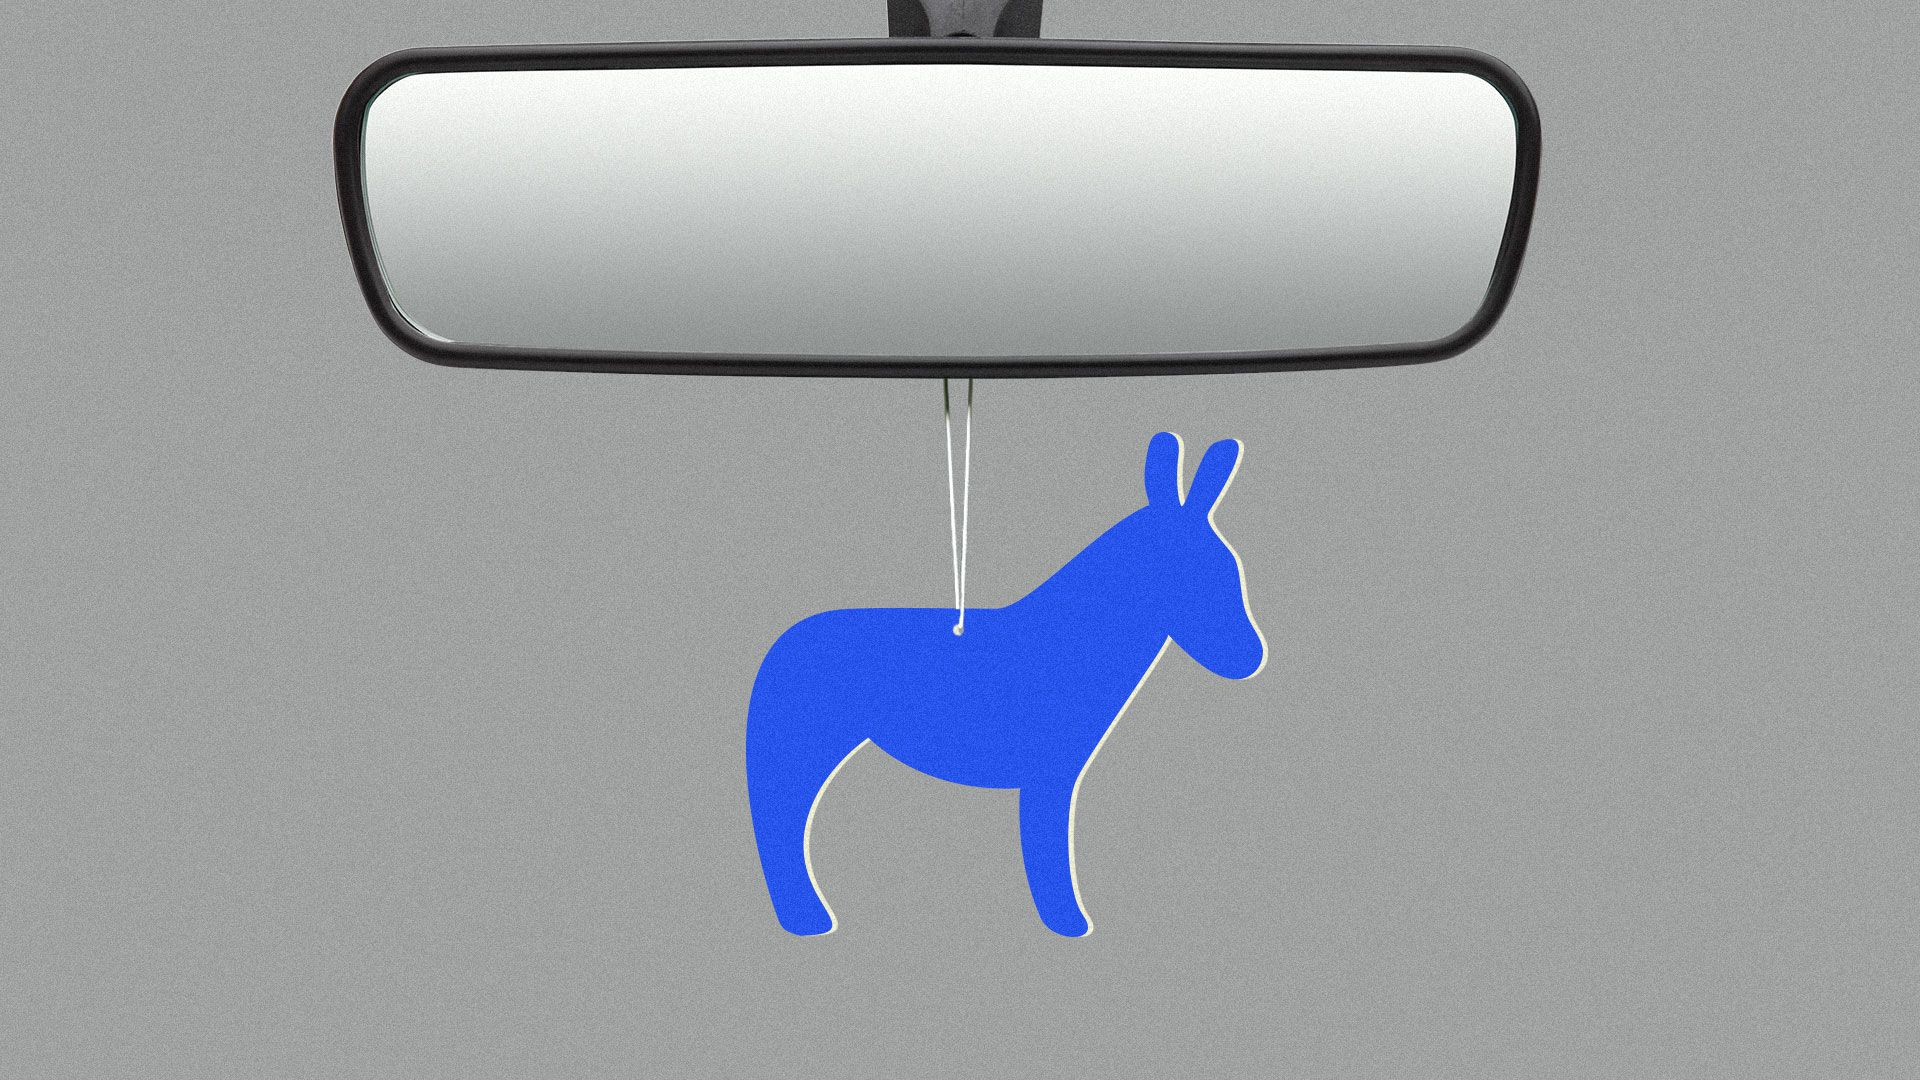 Illustration of a car freshener in the shape of a donkey.